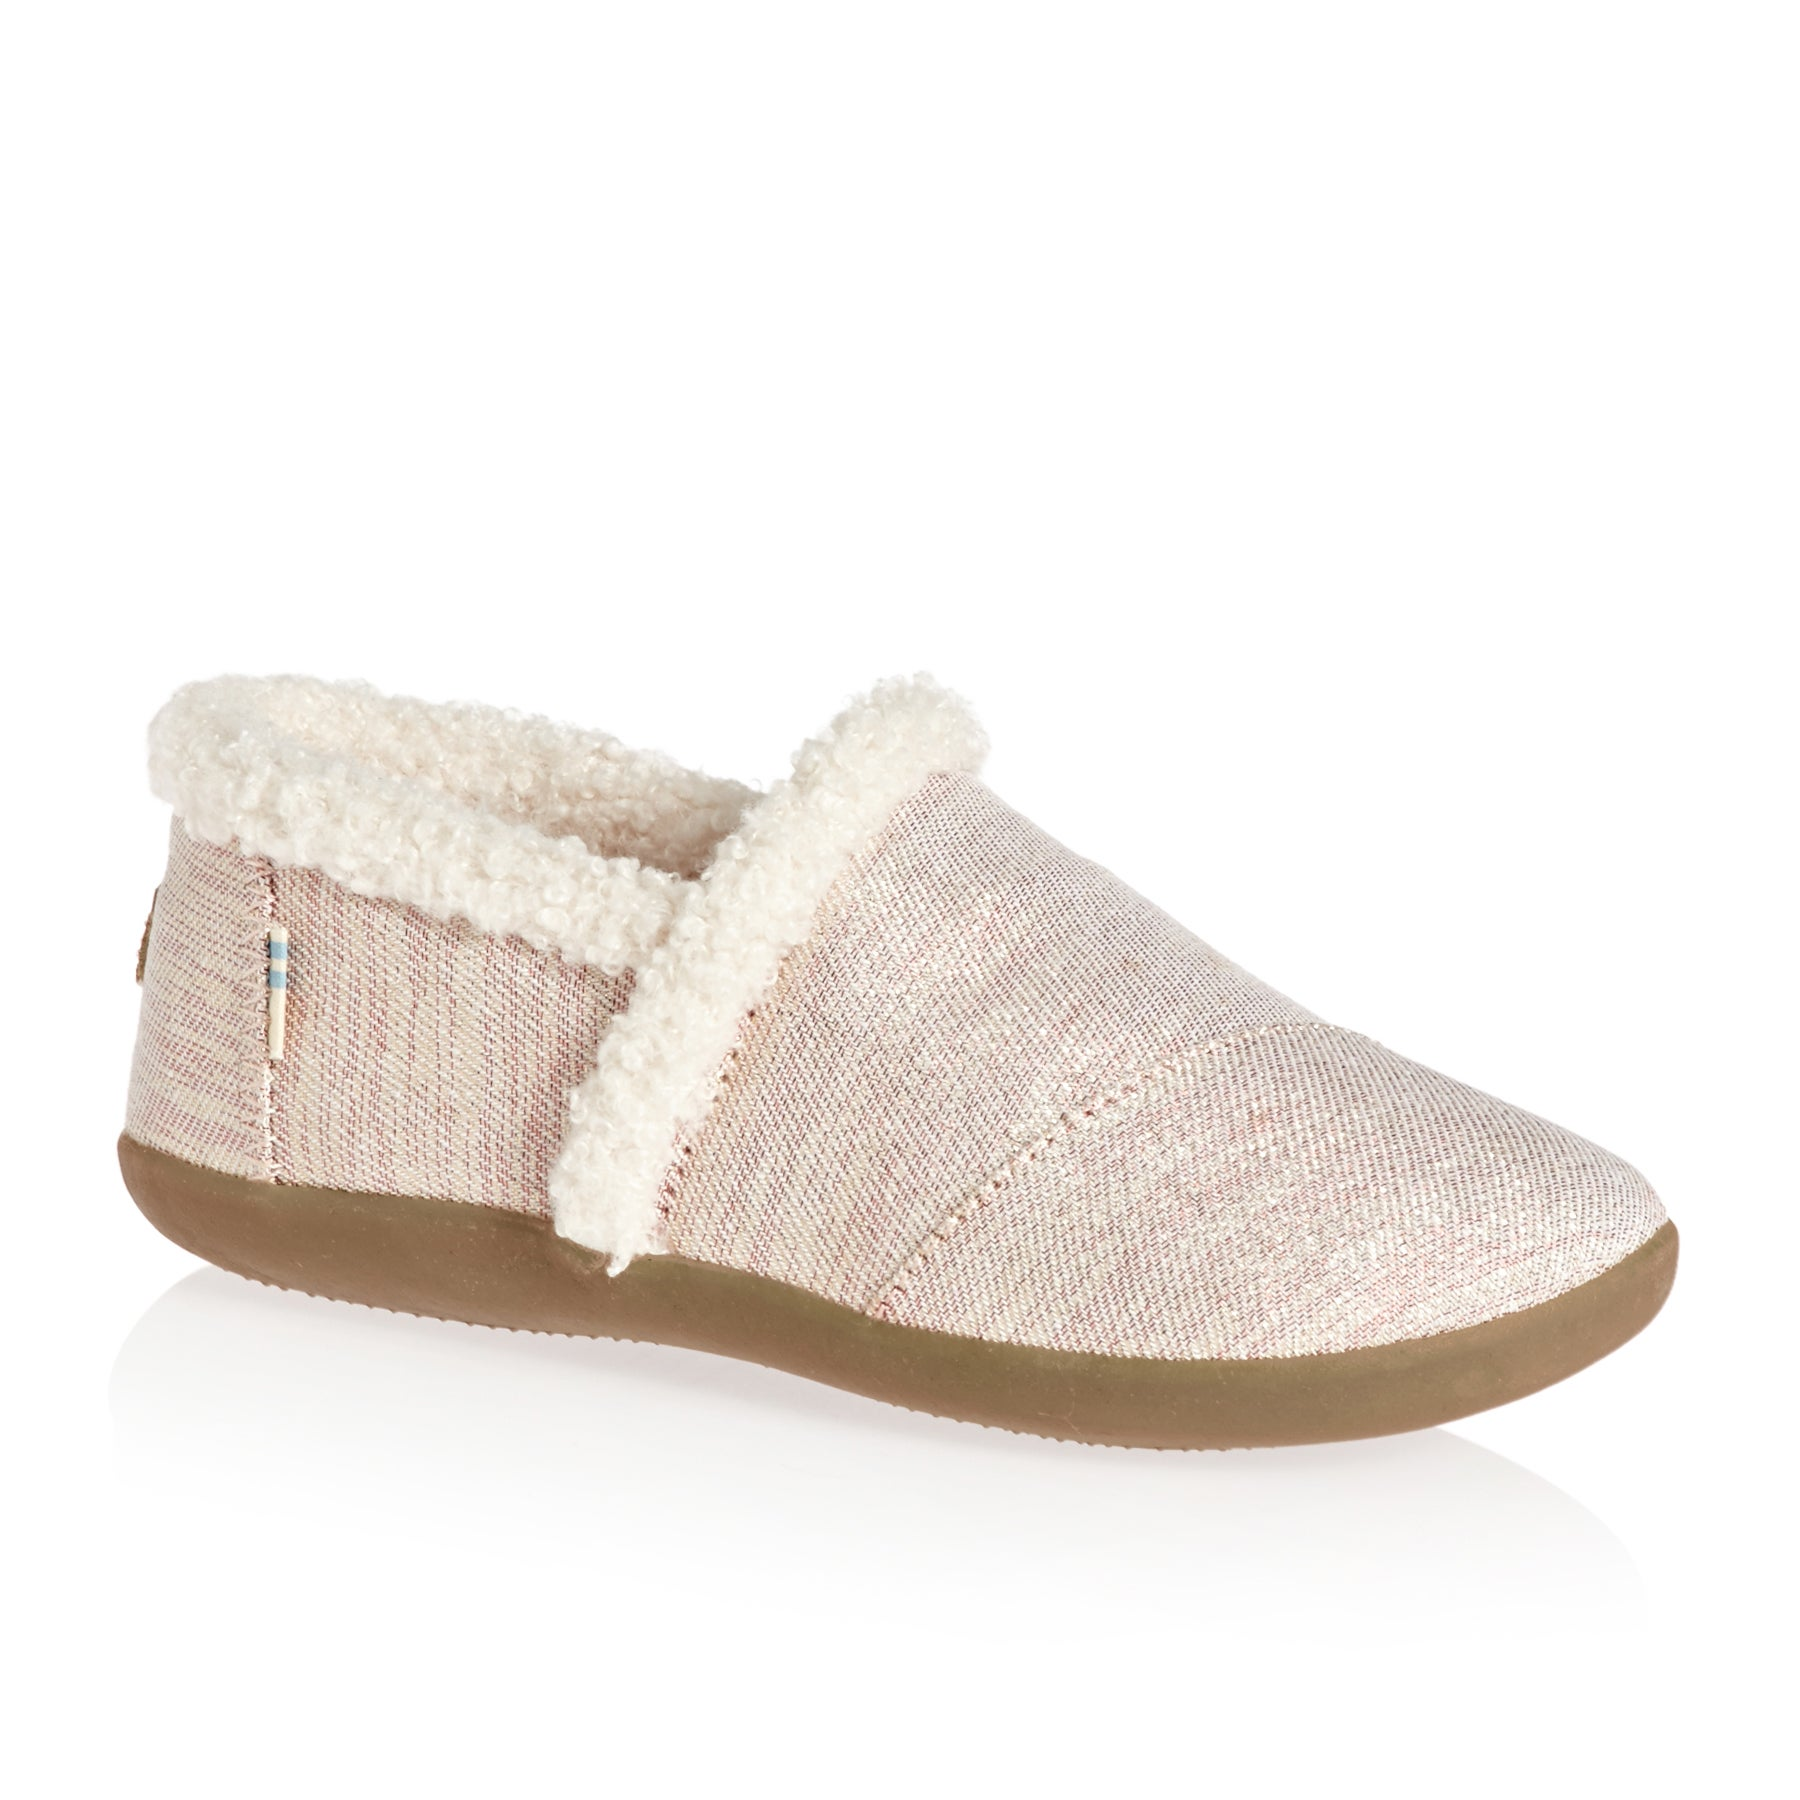 4a0707074 Toms House Kids Slippers available from Surfdome